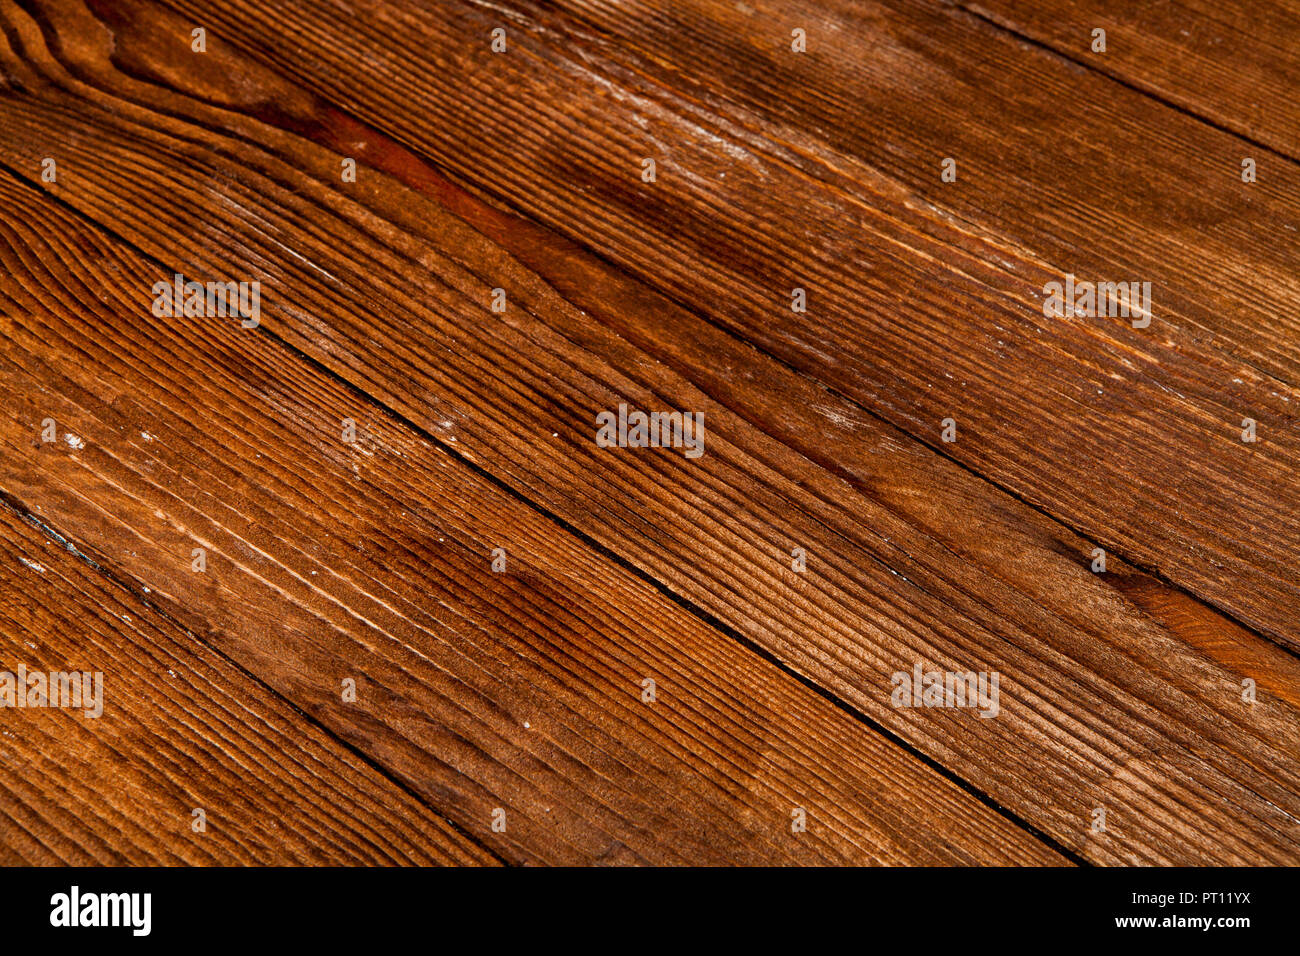 Dark wooden texture. Wood brown texture. Background old panels. Retro wooden table. Rustic background. Vintage colored surface. - Stock Image